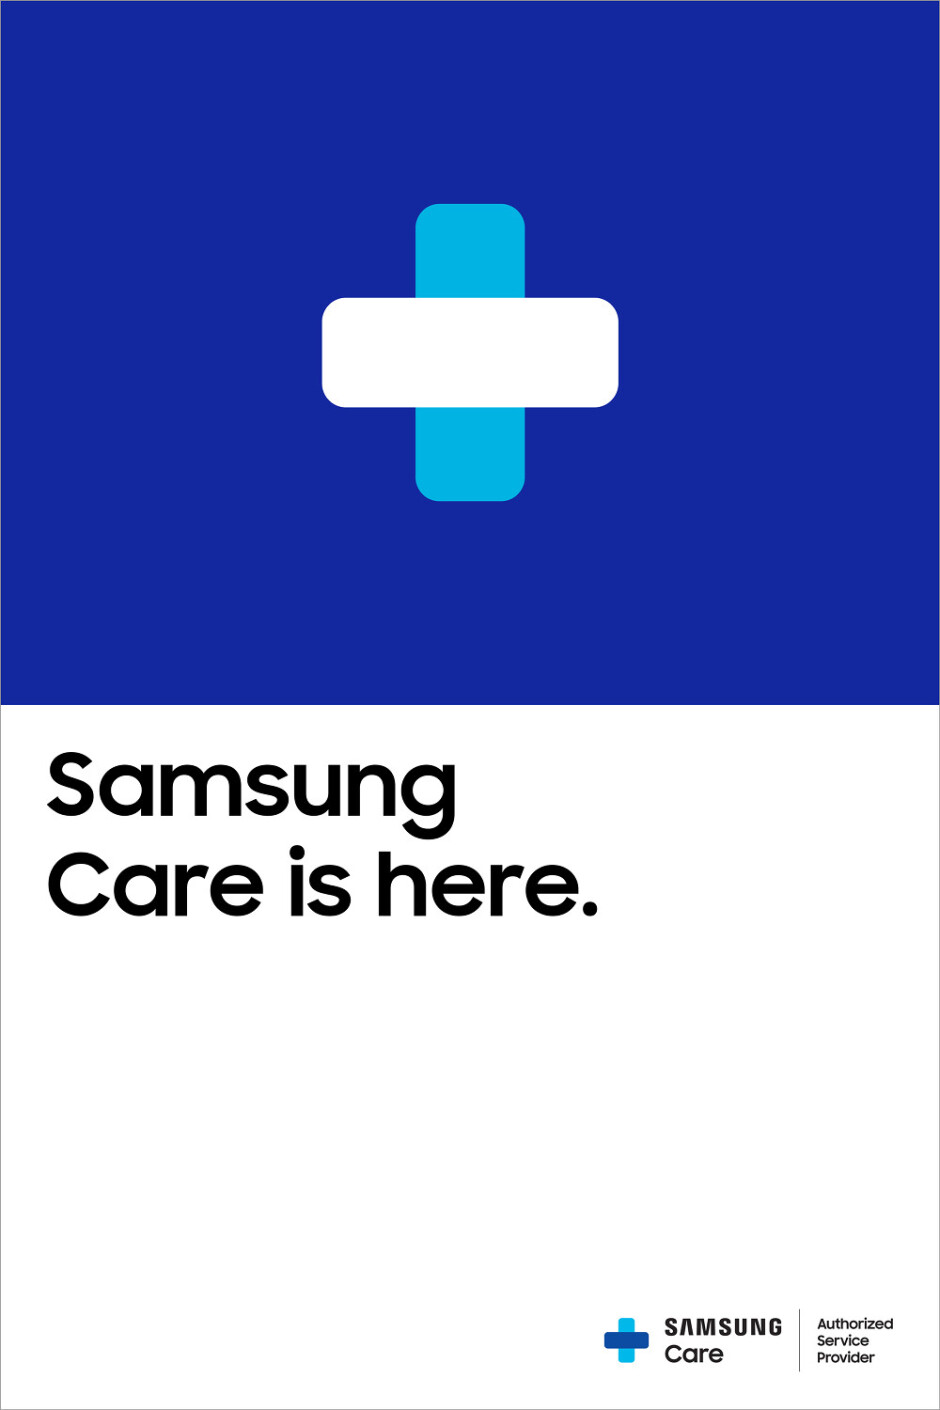 Samsung to offer in-person service for Galaxy smartphones in the United States